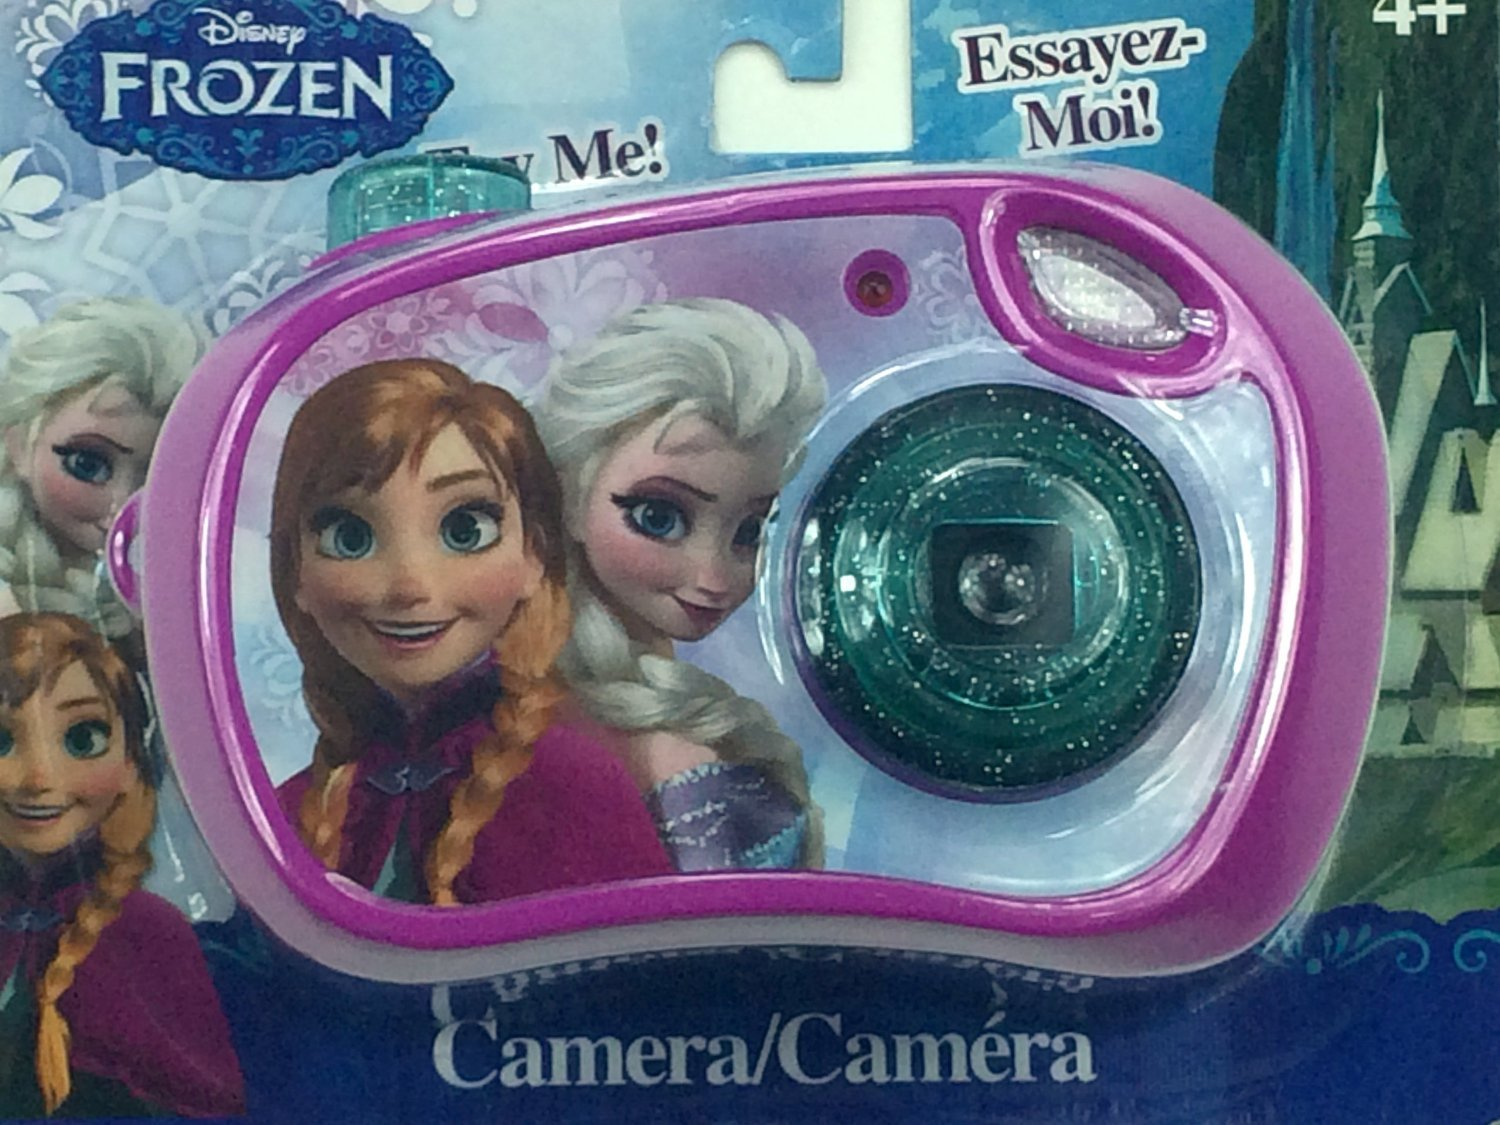 Disney Frozen Toy Camera Featuring Elsa & Anna